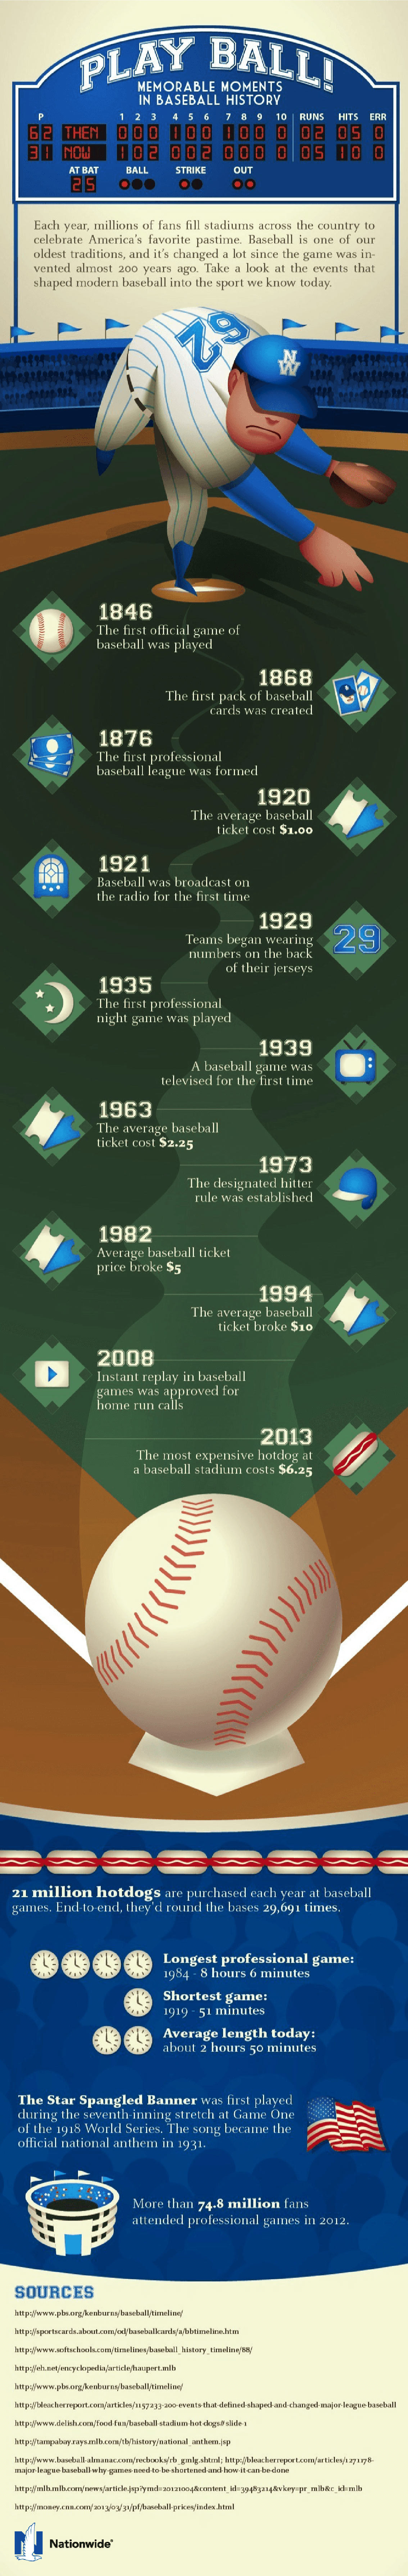 Memorable Moments in Baseball History - Sports Infographic